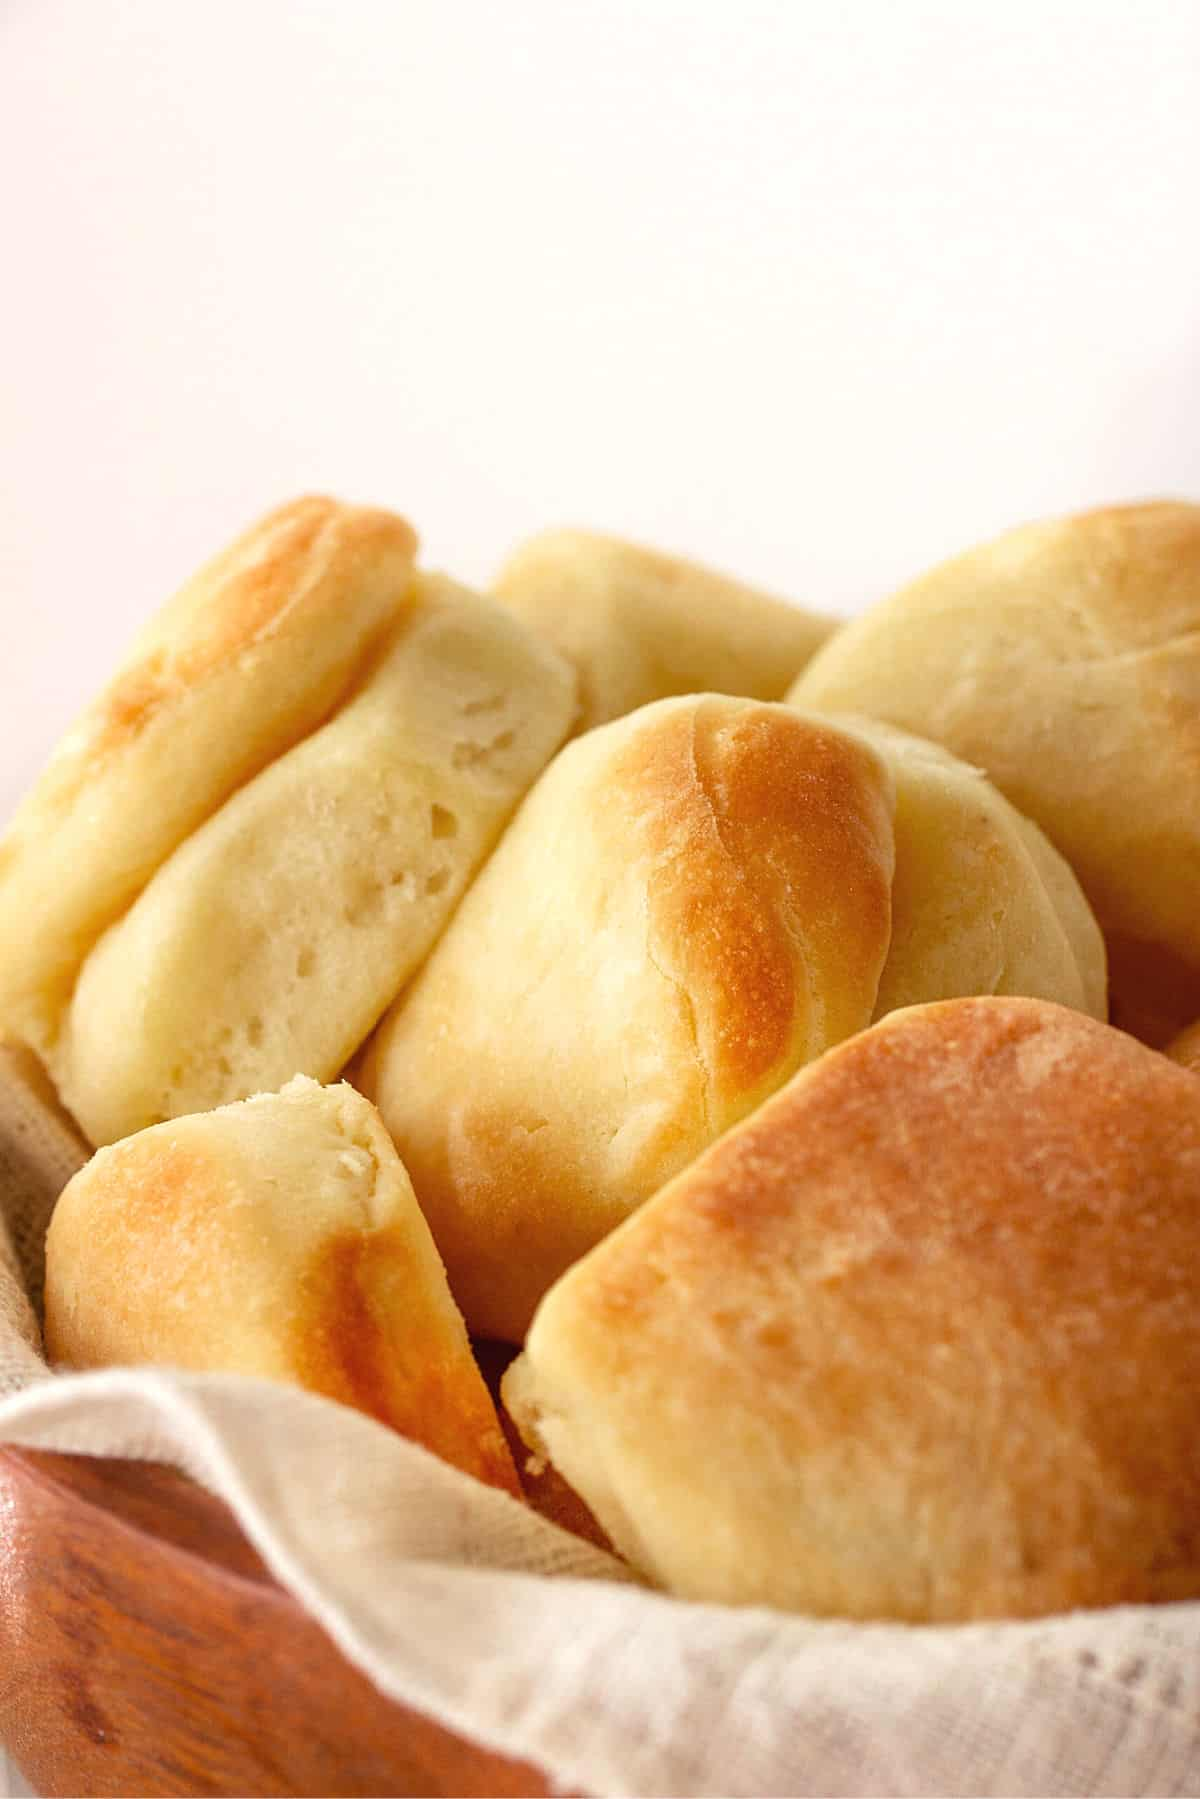 Close-up of golden parker house rolls  on a cloth in a wooden bowl